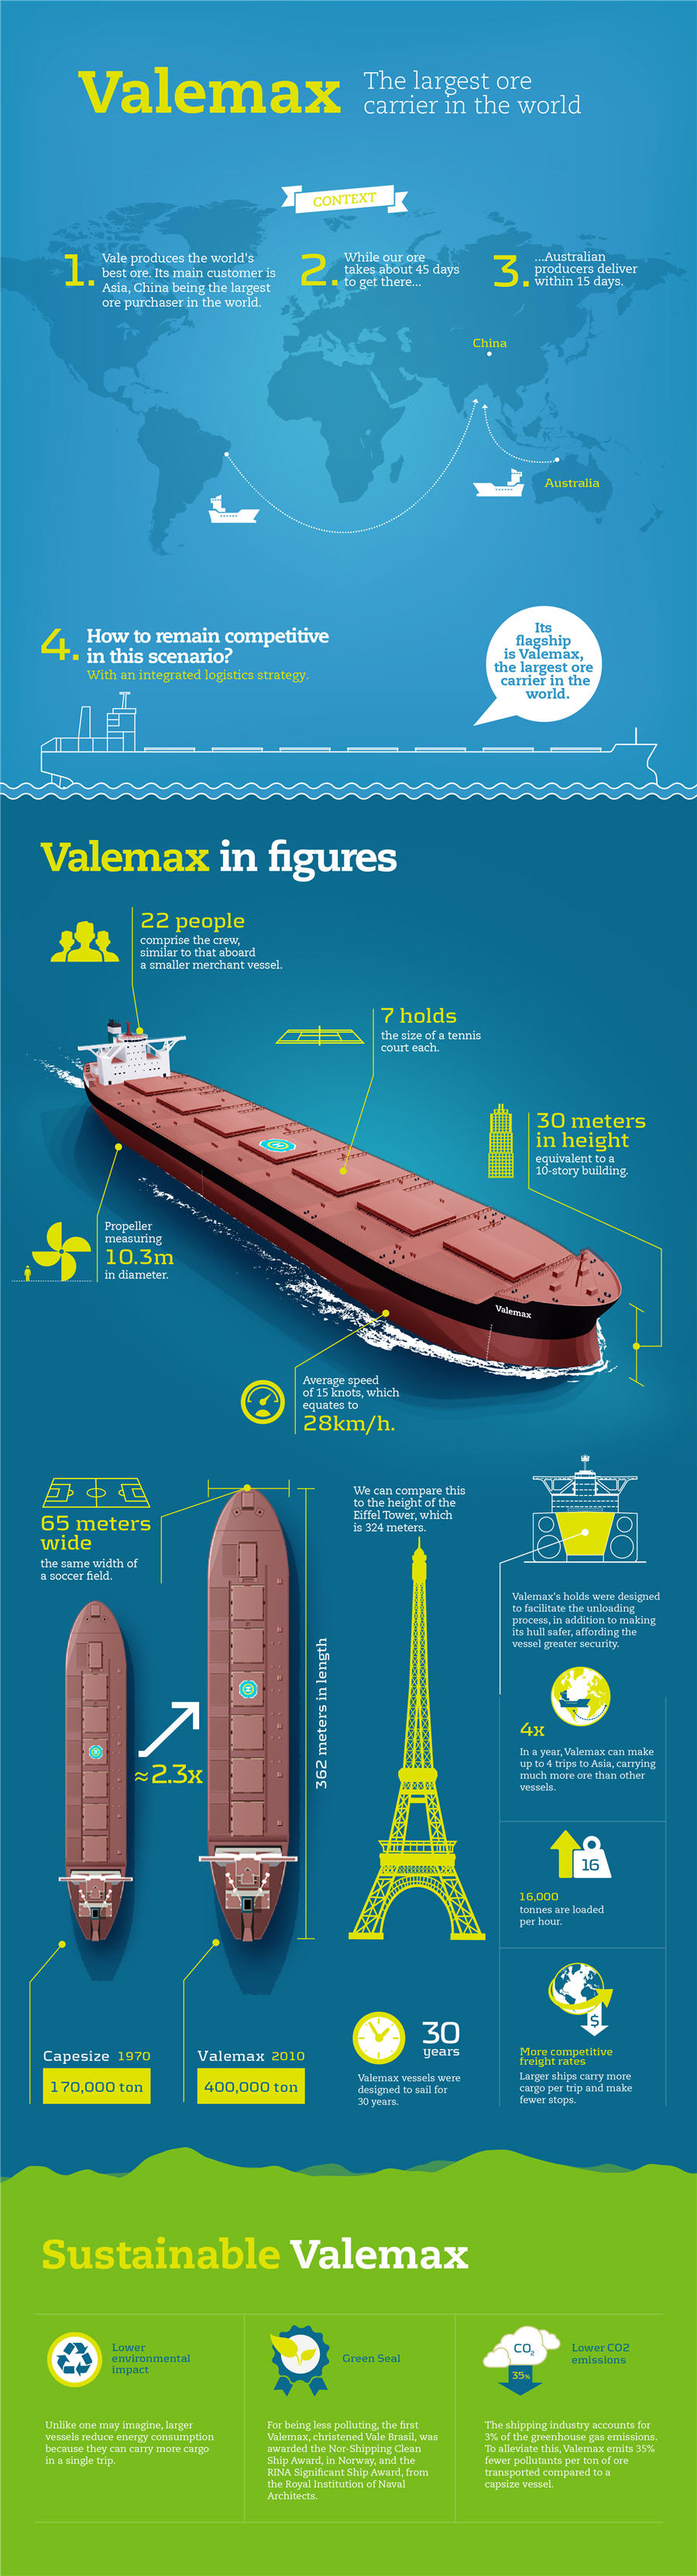 INFOGRAPHIC: Vale's gigantic ore carriers